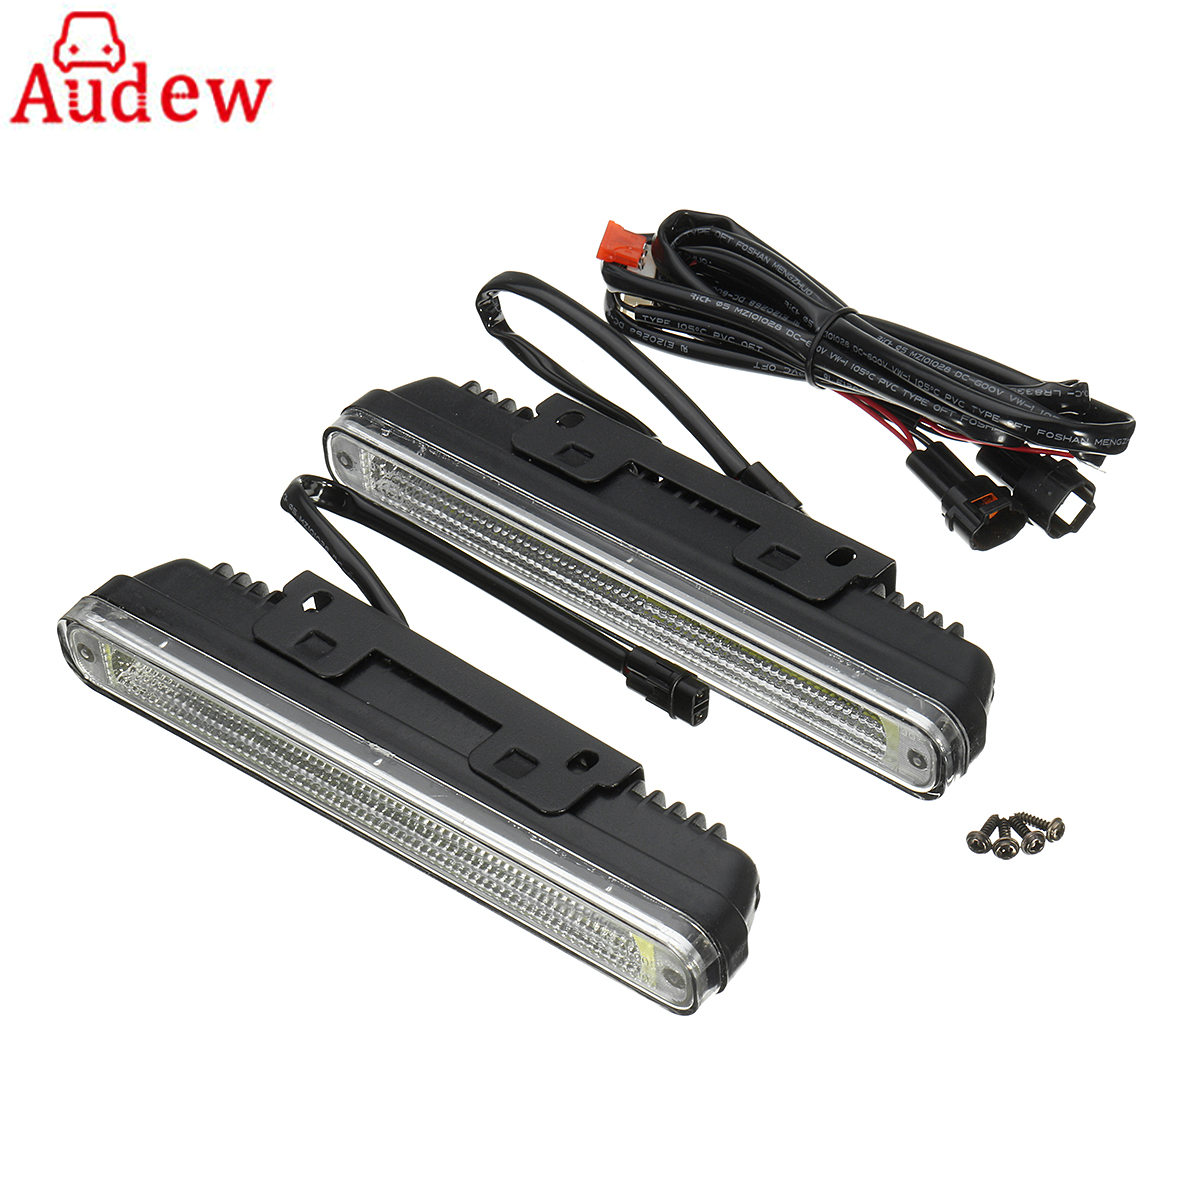 2Pcs Universal Car Daytime Running Light LED COB 12V DRL Auto Driving Front Fog Lamp White Bulb Waterproof 6000K 1pcs high power h3 led 80w led super bright white fog tail turn drl auto car light daytime running driving lamp bulb 12v